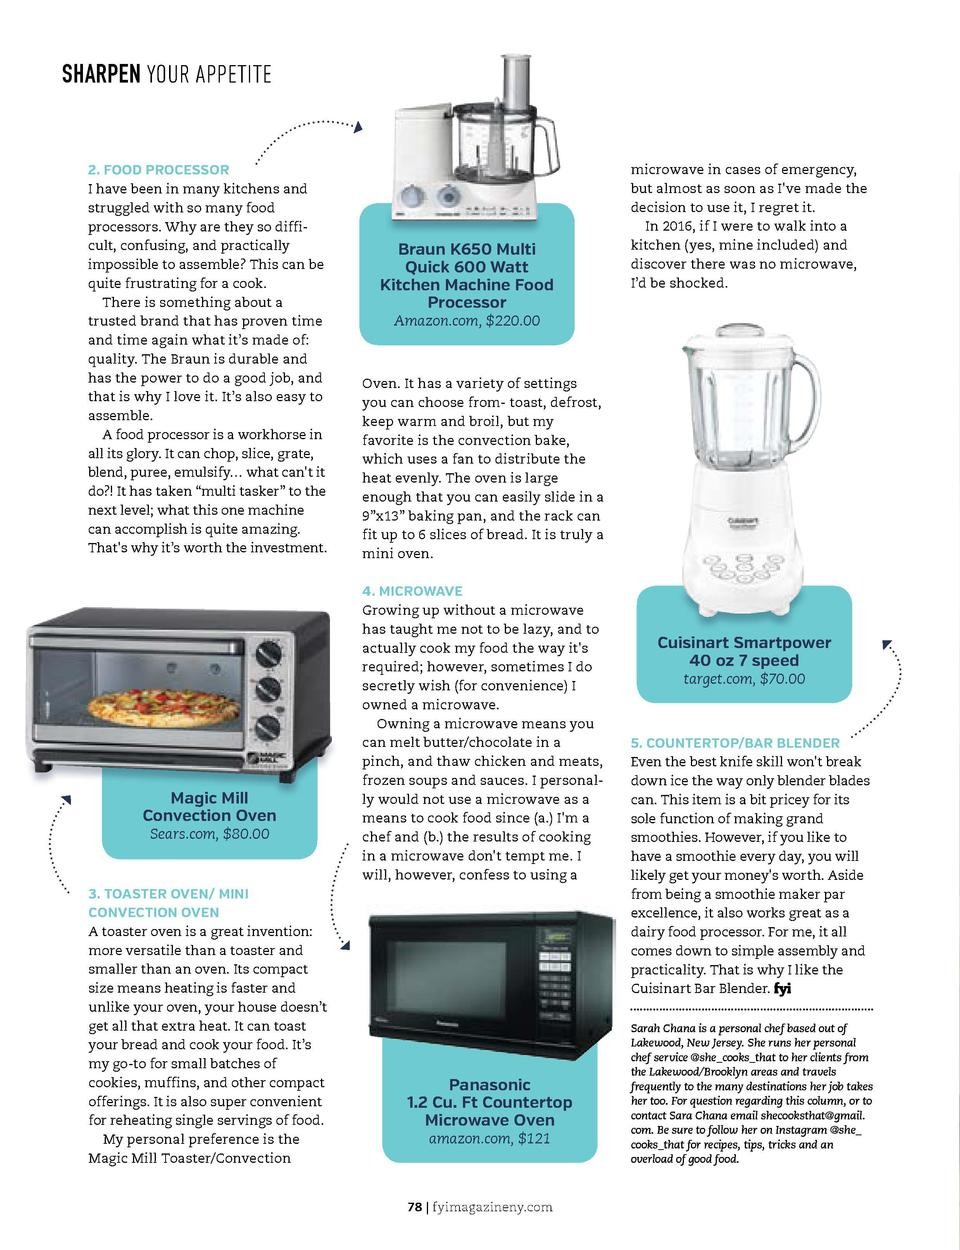 November 2016 Thread Fixed Kenmore 80 Series Electric Dryer Heating But Not You Gotta Know Sharpen Your Appetite For Less Book Review Magic Helpers 2 Food Processor